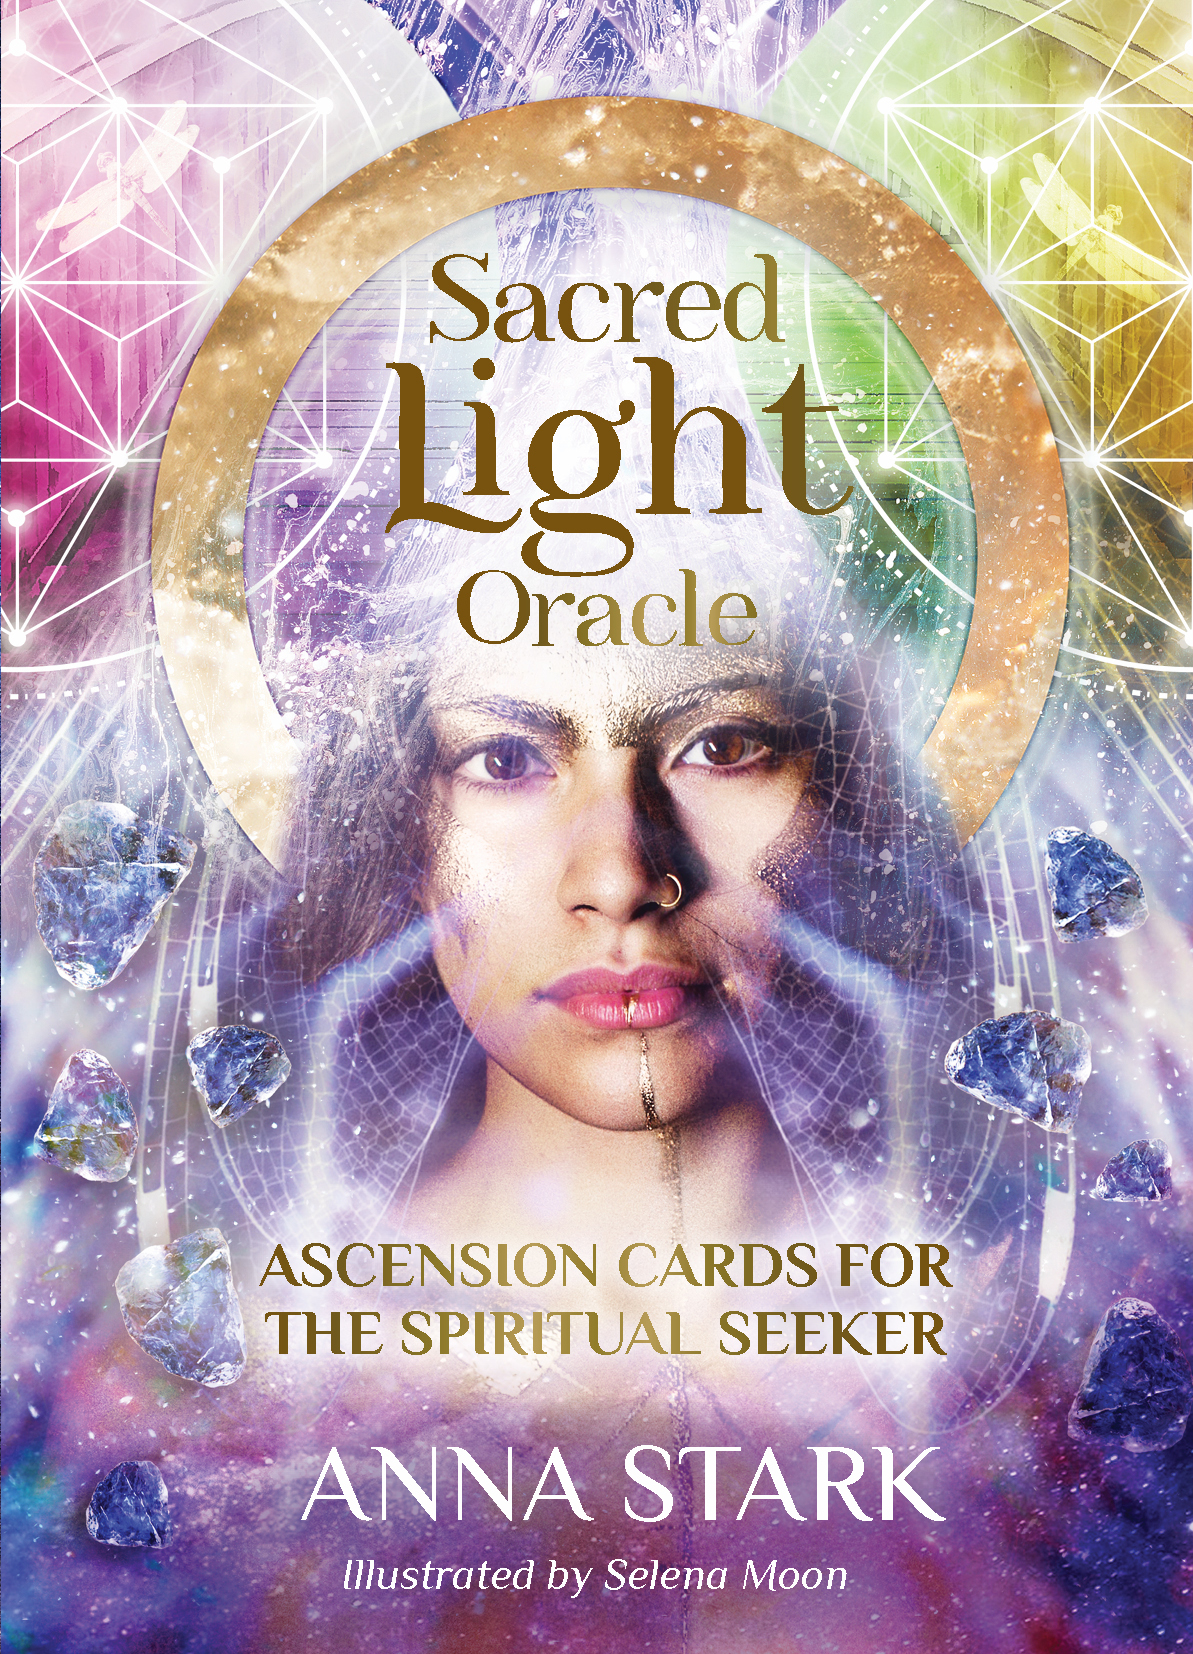 Sacred Light Oracle